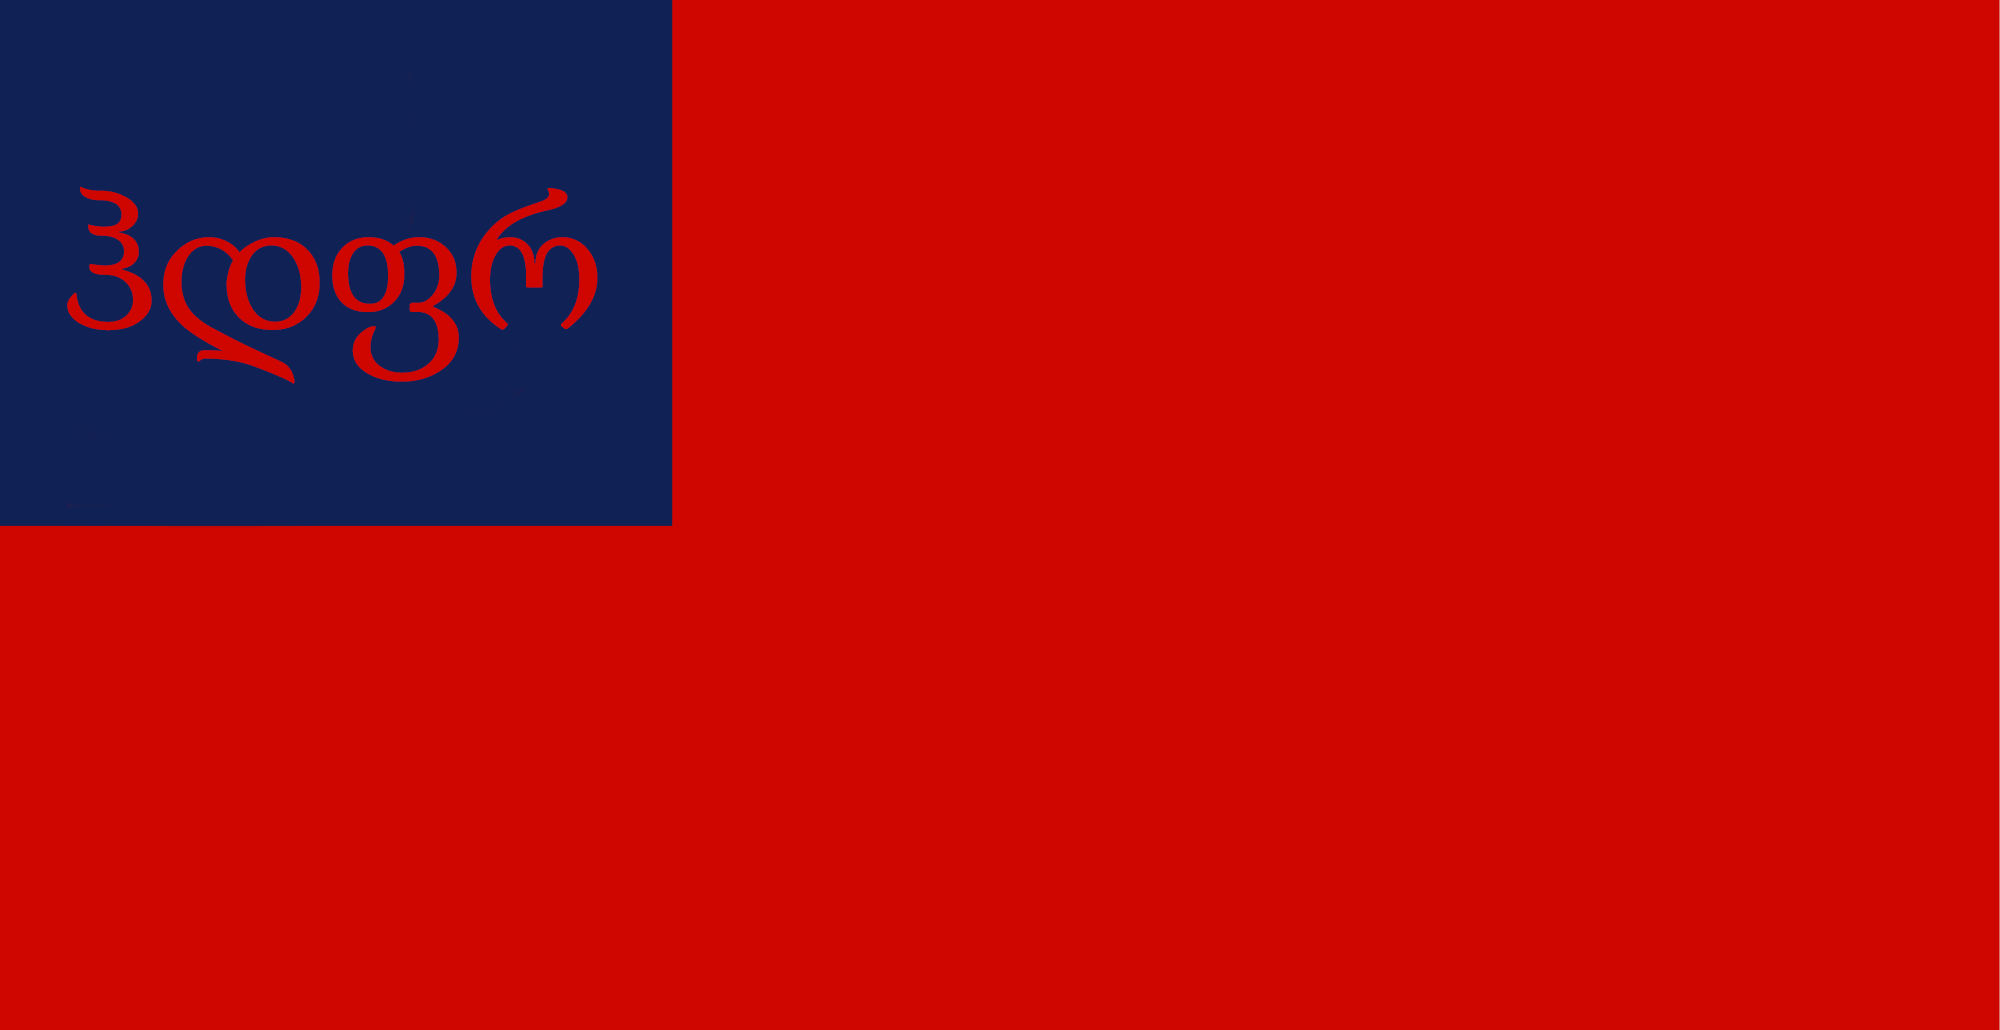 The Flag of the Hobrazian Democratic Federative Republic (Hobrazia)